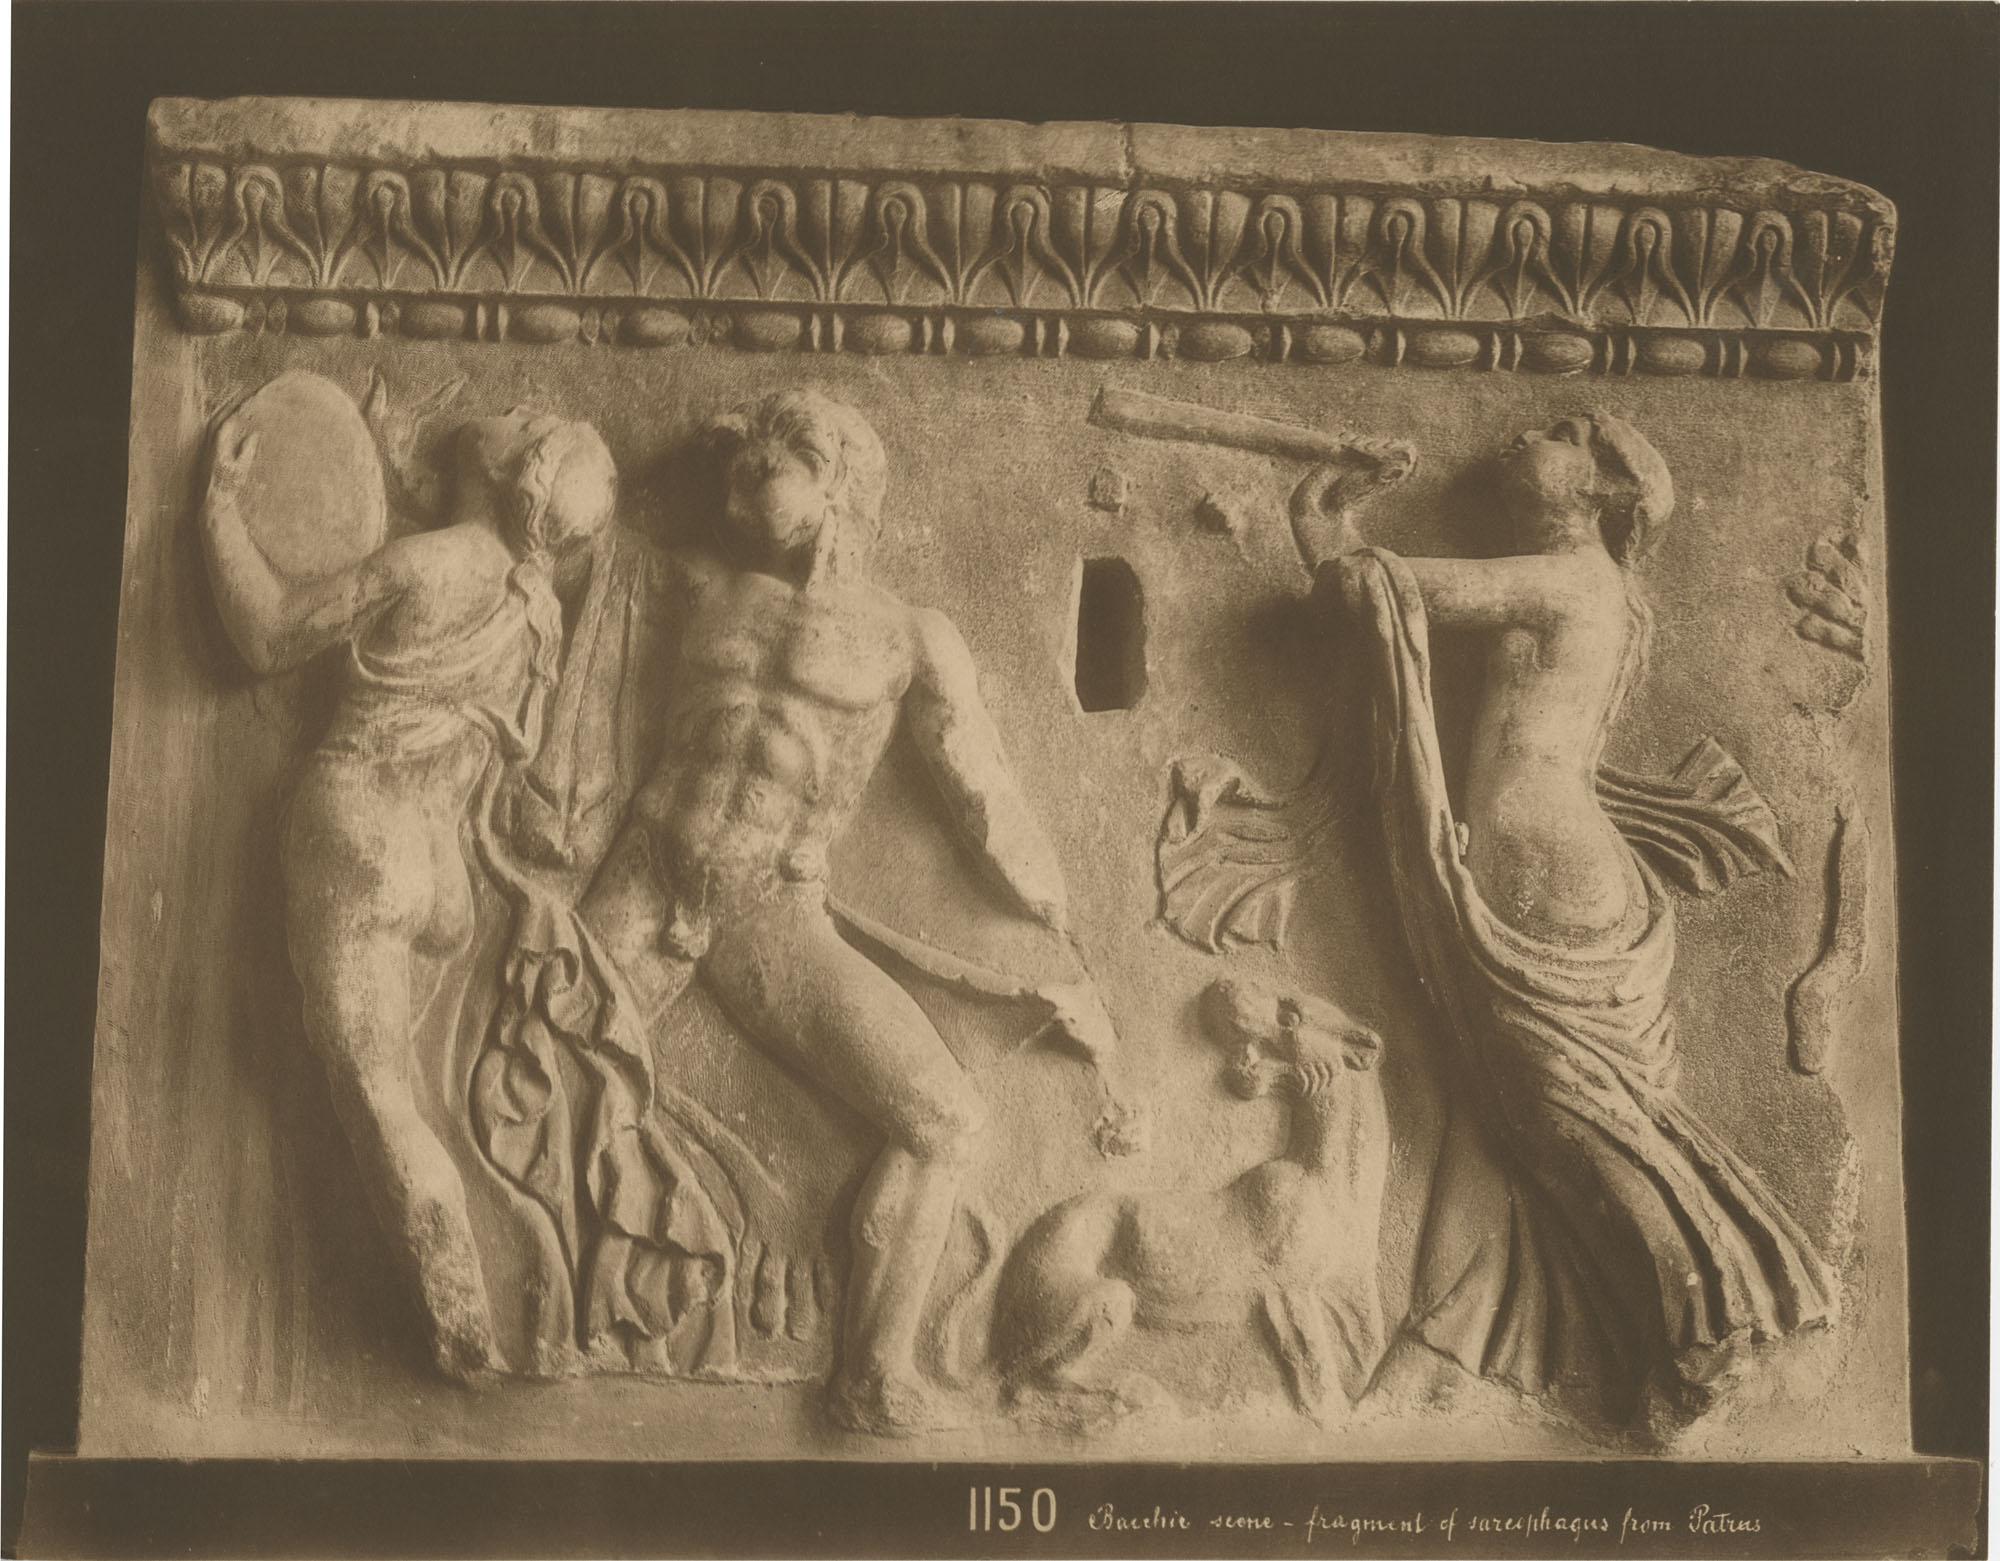 Sculpture from Athens, Greece, Photograph 7